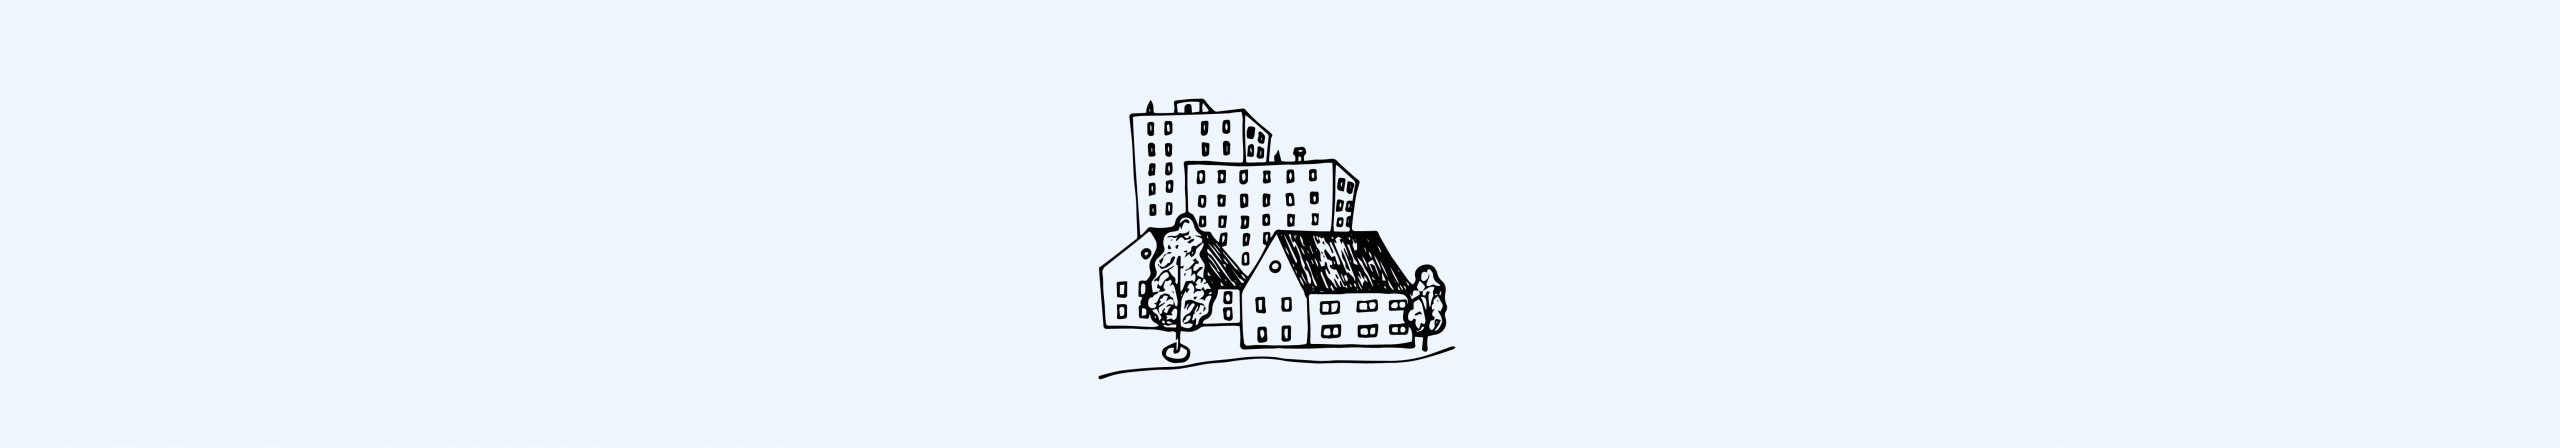 Illustration of buildings and homes.